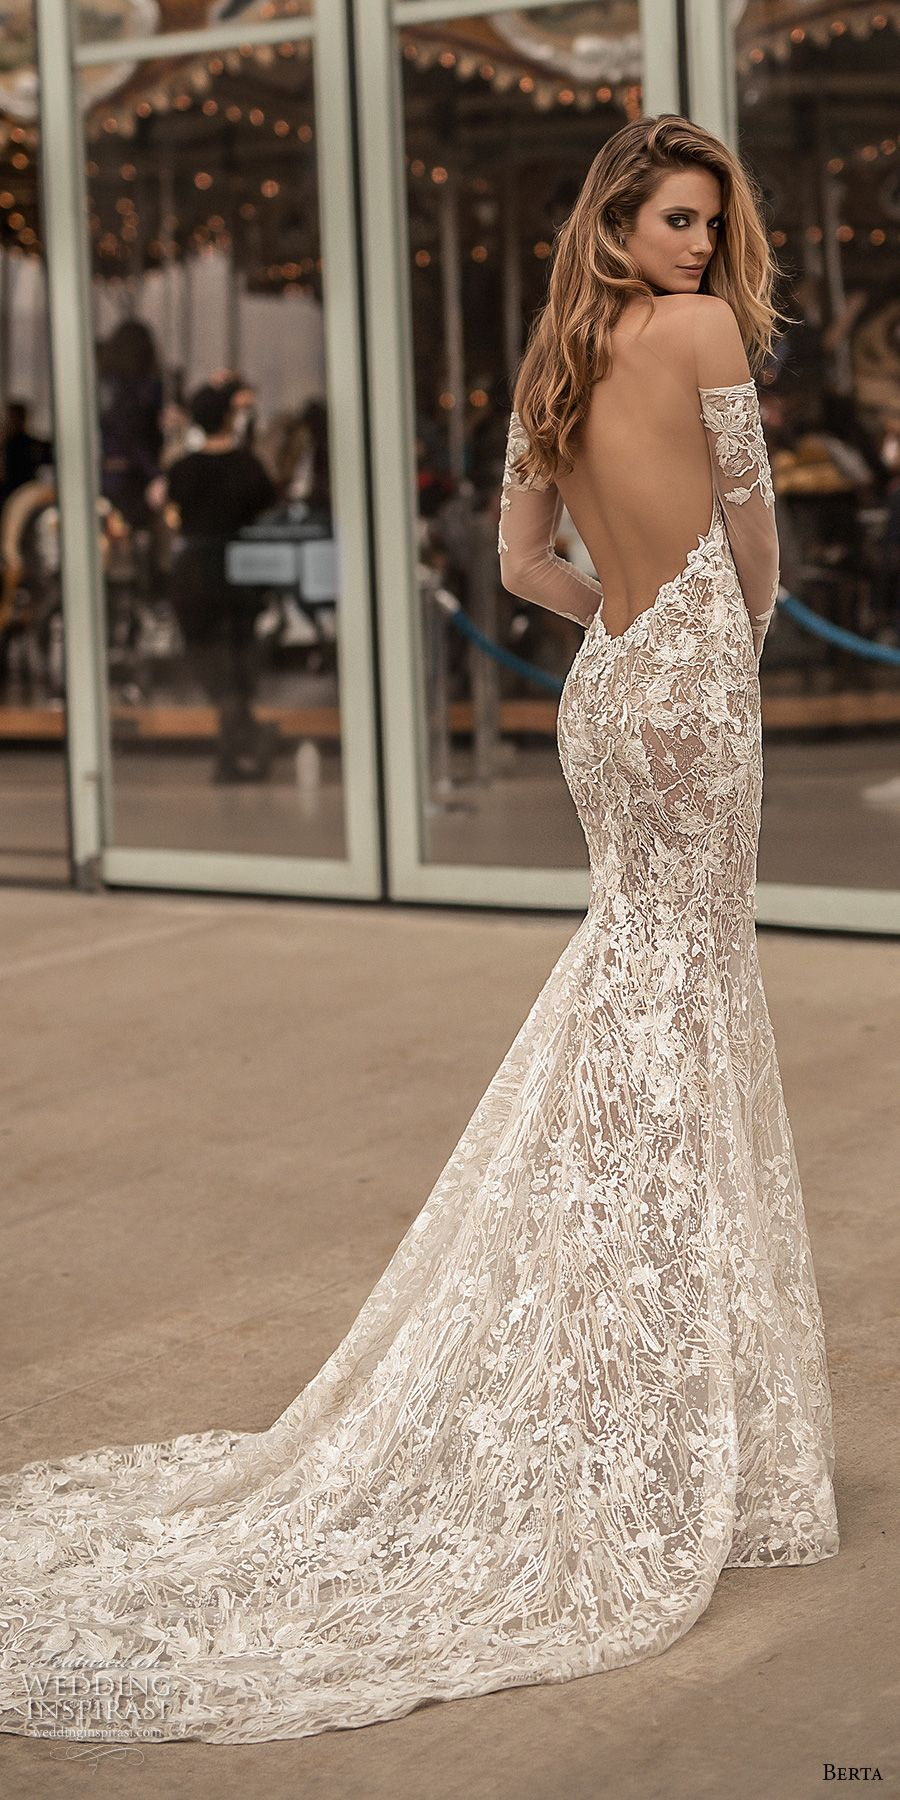 berta spring 2018 bridal long sleeves off the shoulder sweetheart neckline  full embellishment sexy elegant fit and flare wedding dress open low back  medium ... ca88a0d04